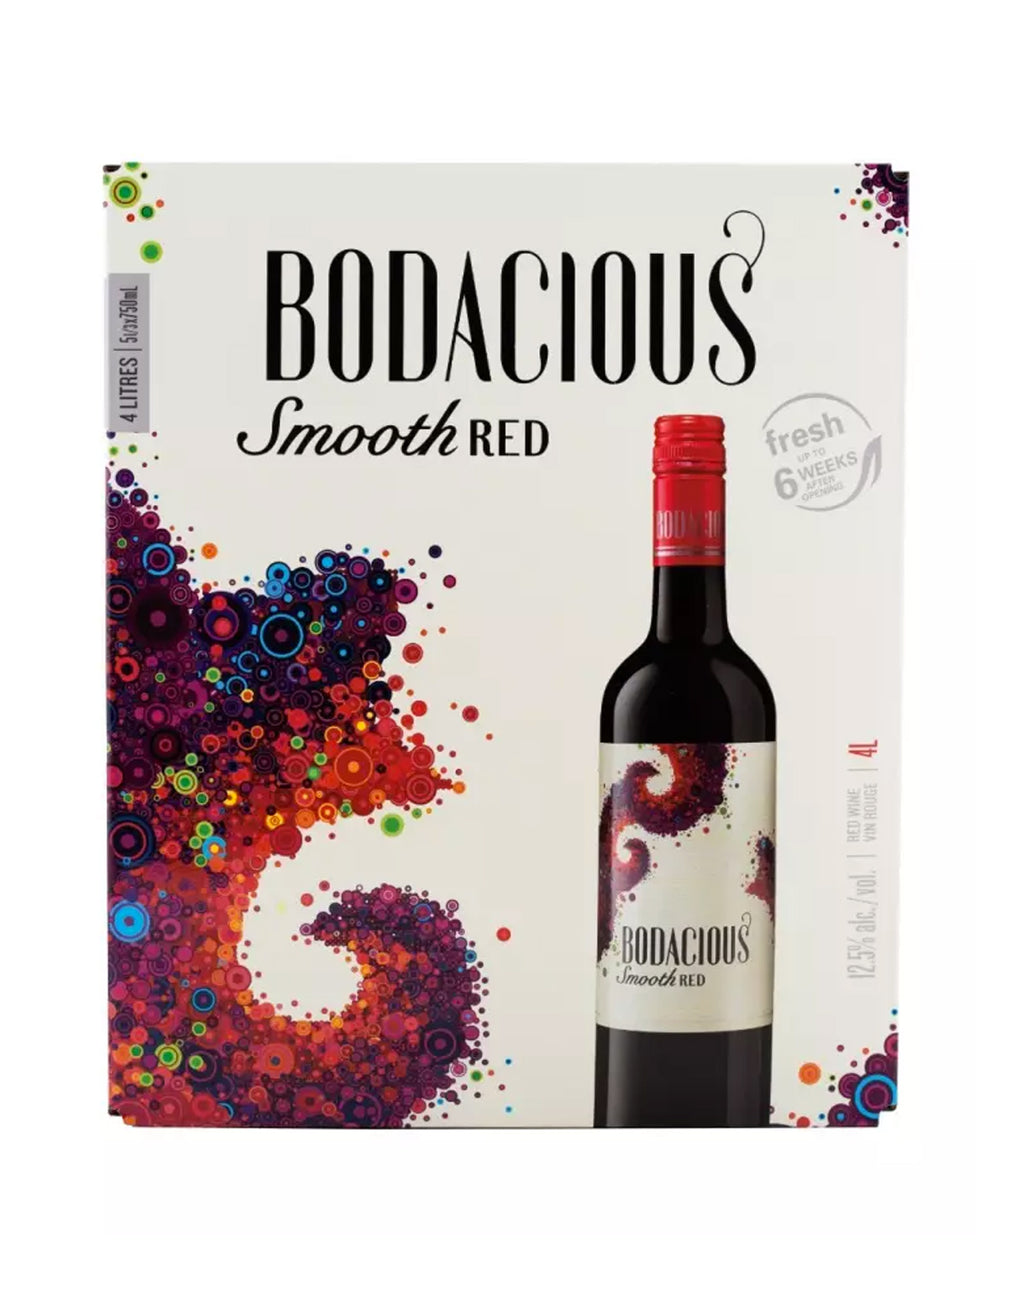 Bodacious Smooth Red - 4 Litre Box